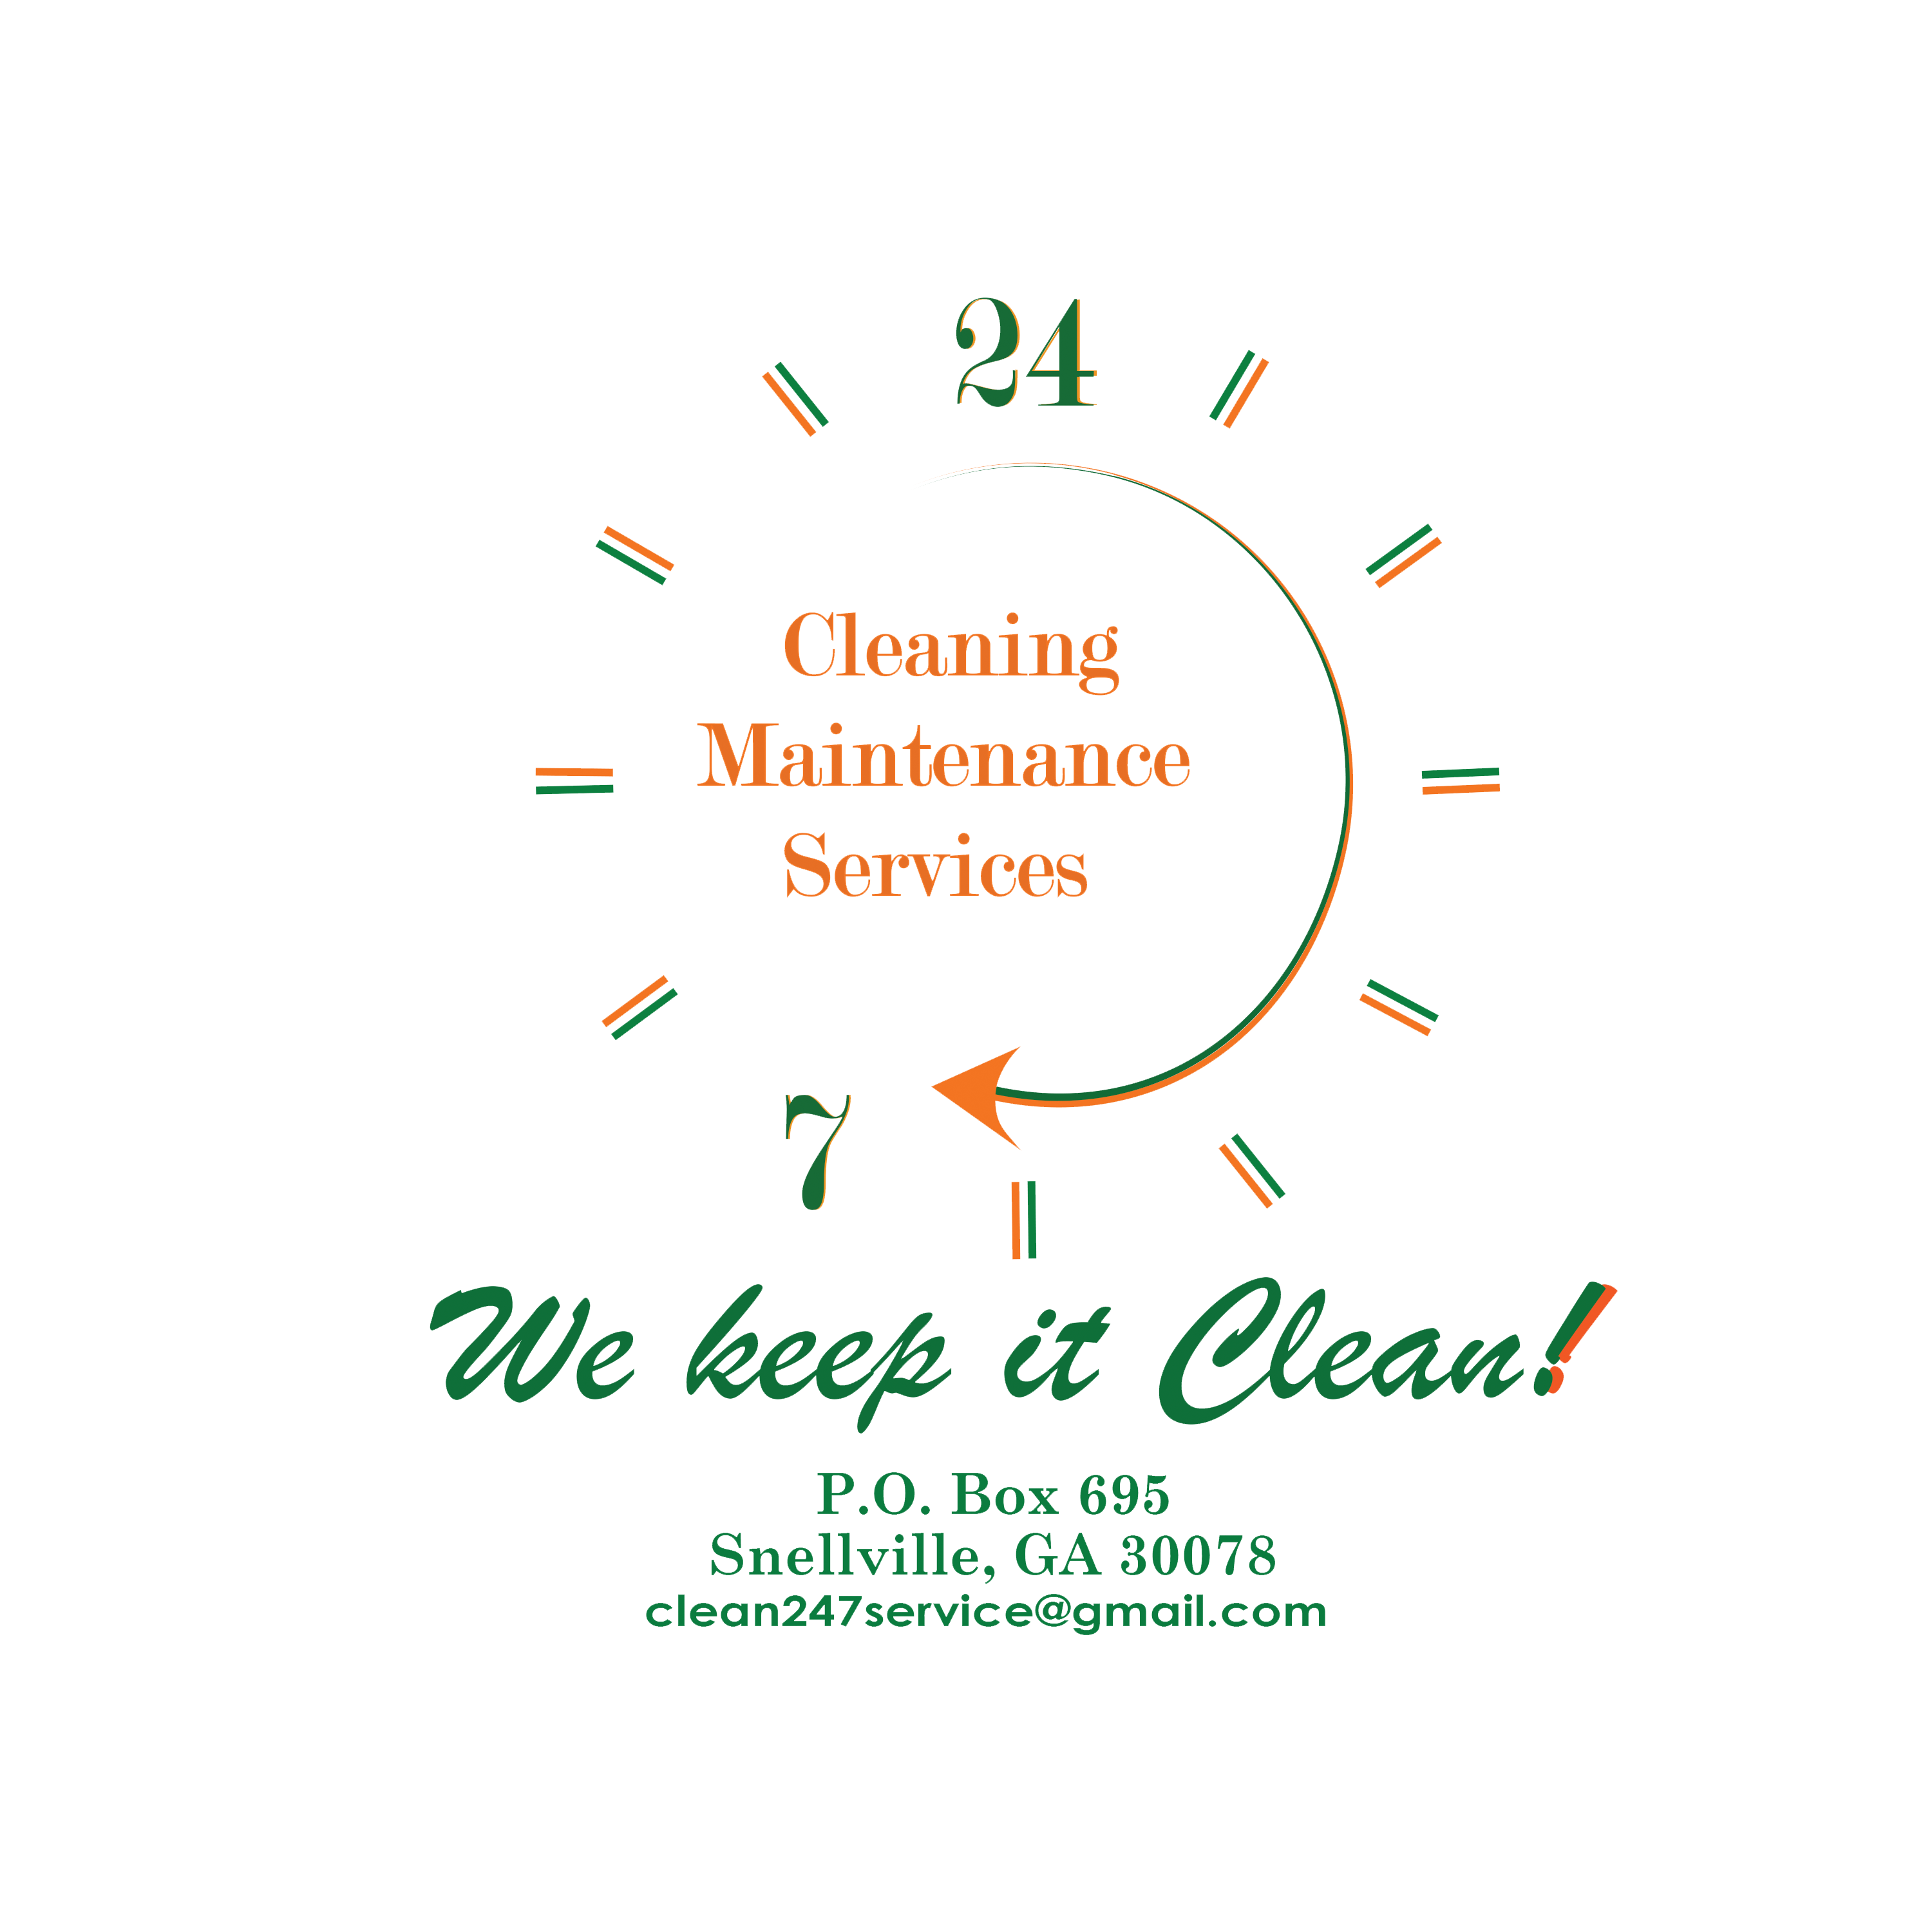 24/7 Cleaning Maintenance Services